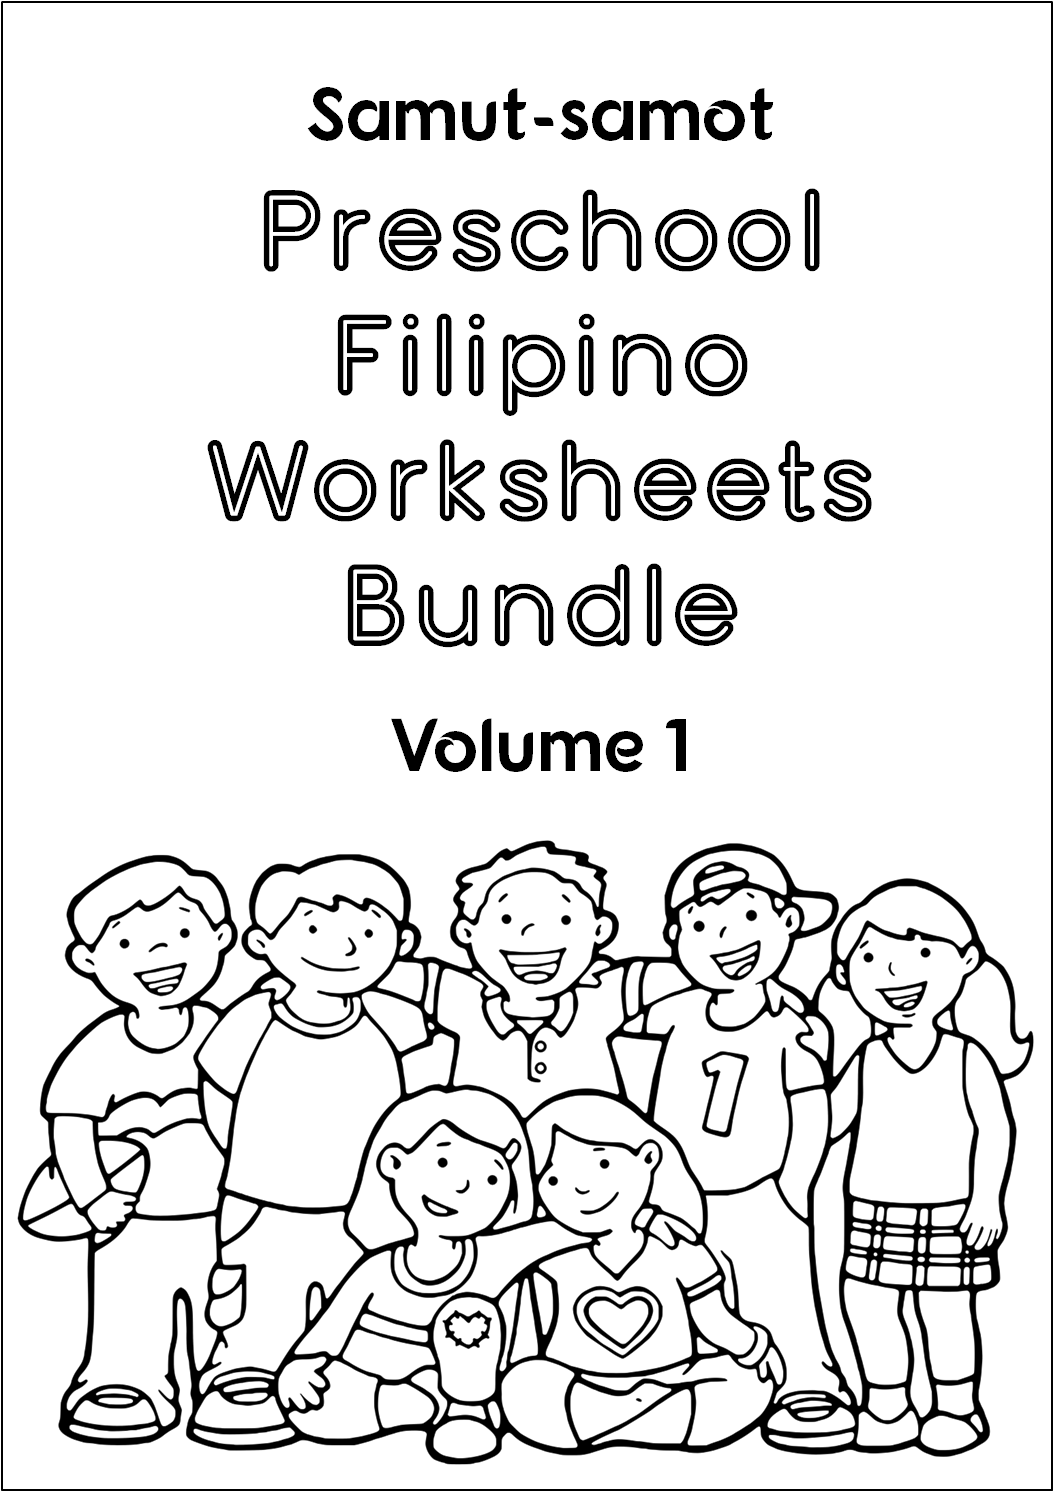 preschool filipino worksheets bundle vol  1  u2013 joel reyes noche